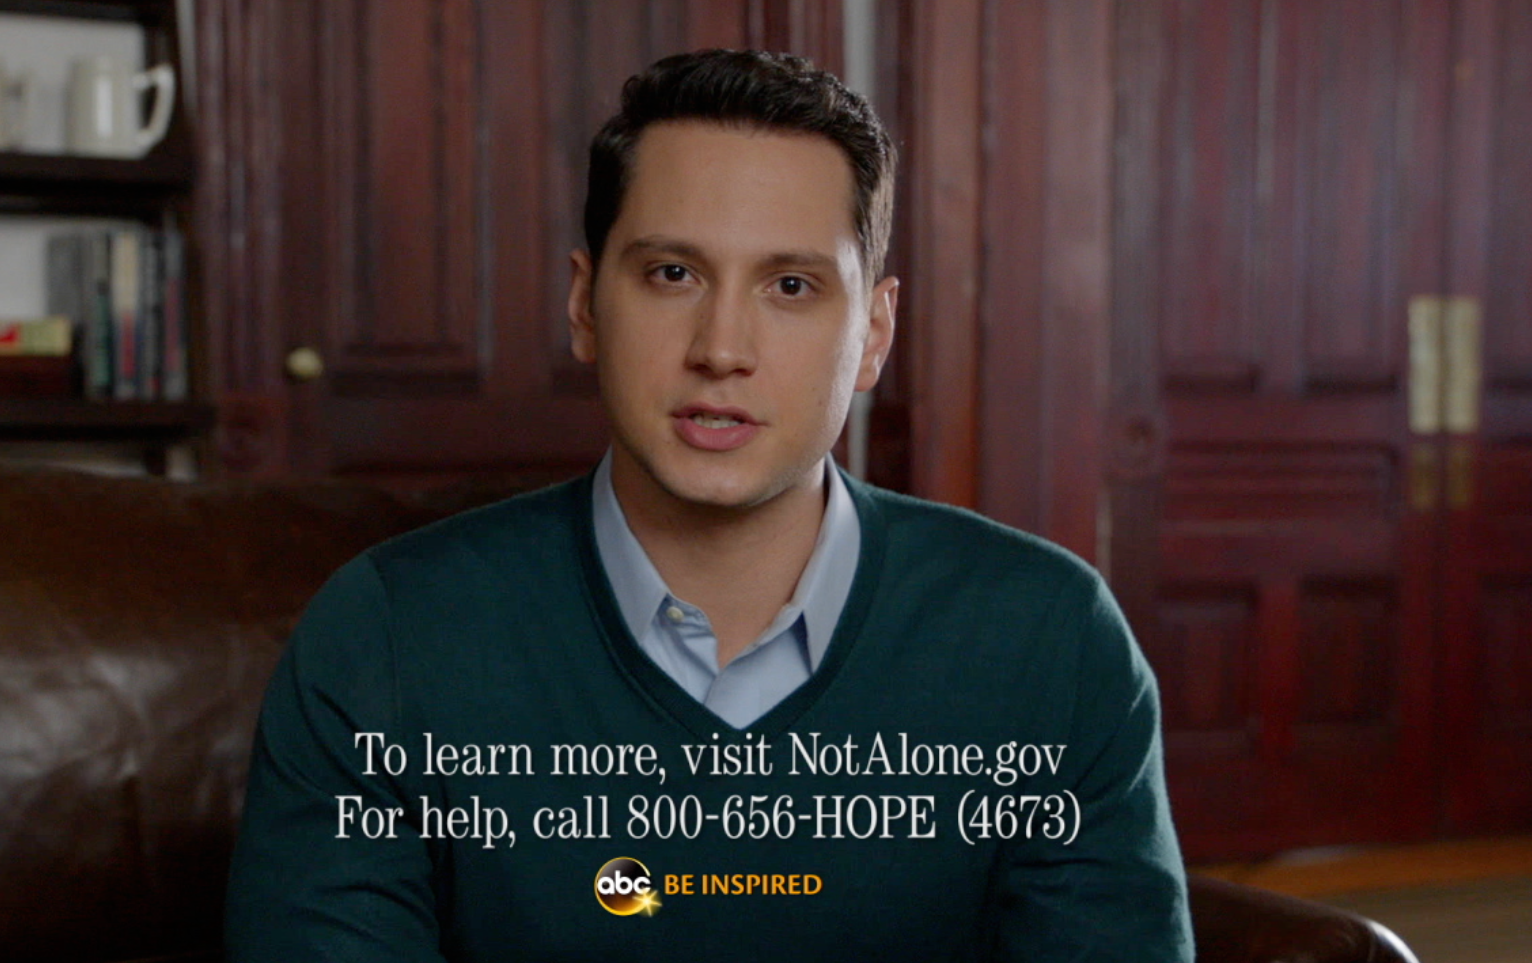 Television star Matt McGorry shares the National Sexual Assault Hotline number. Image links to a PSA in QuickTime.